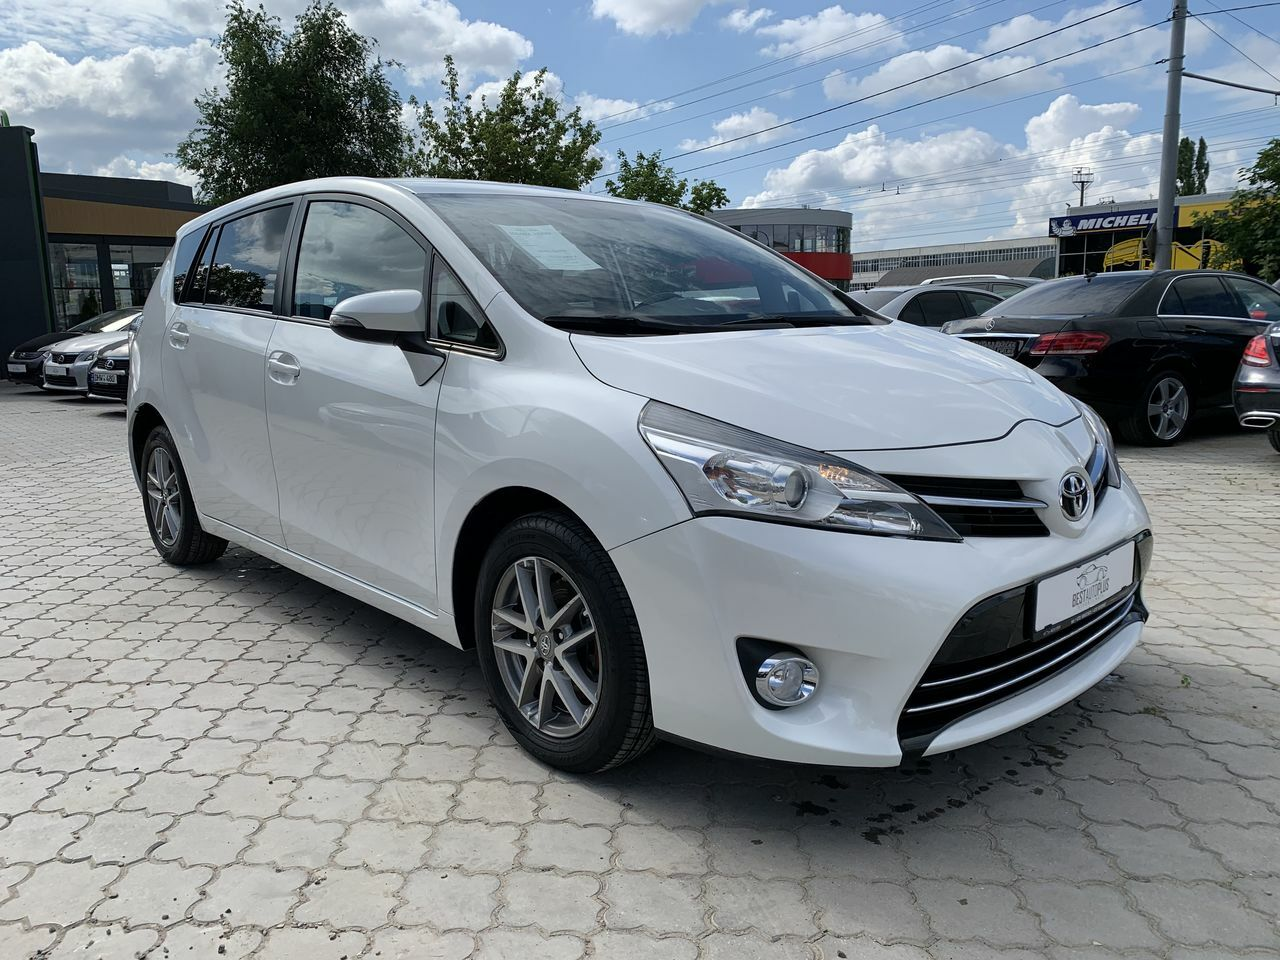 "<span style=""font-weight: 700;"">Toyota verso</span>"